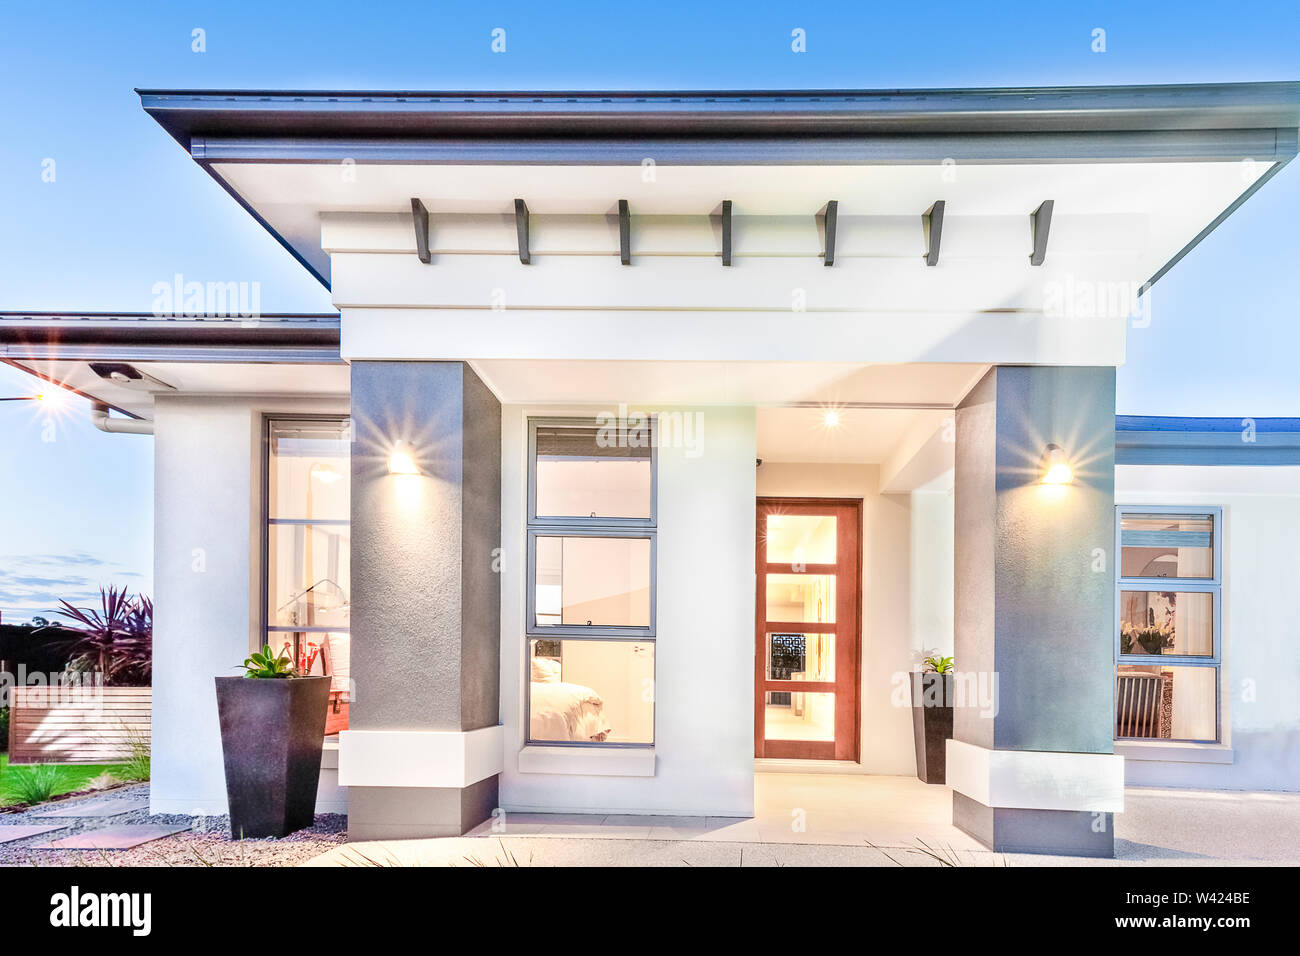 Modern House Front Close Up With Doors And Windows Beside Facade Including Big Concrete Pillars Illuminated With Lights Sky Is Clear Without Clouds Stock Photo Alamy